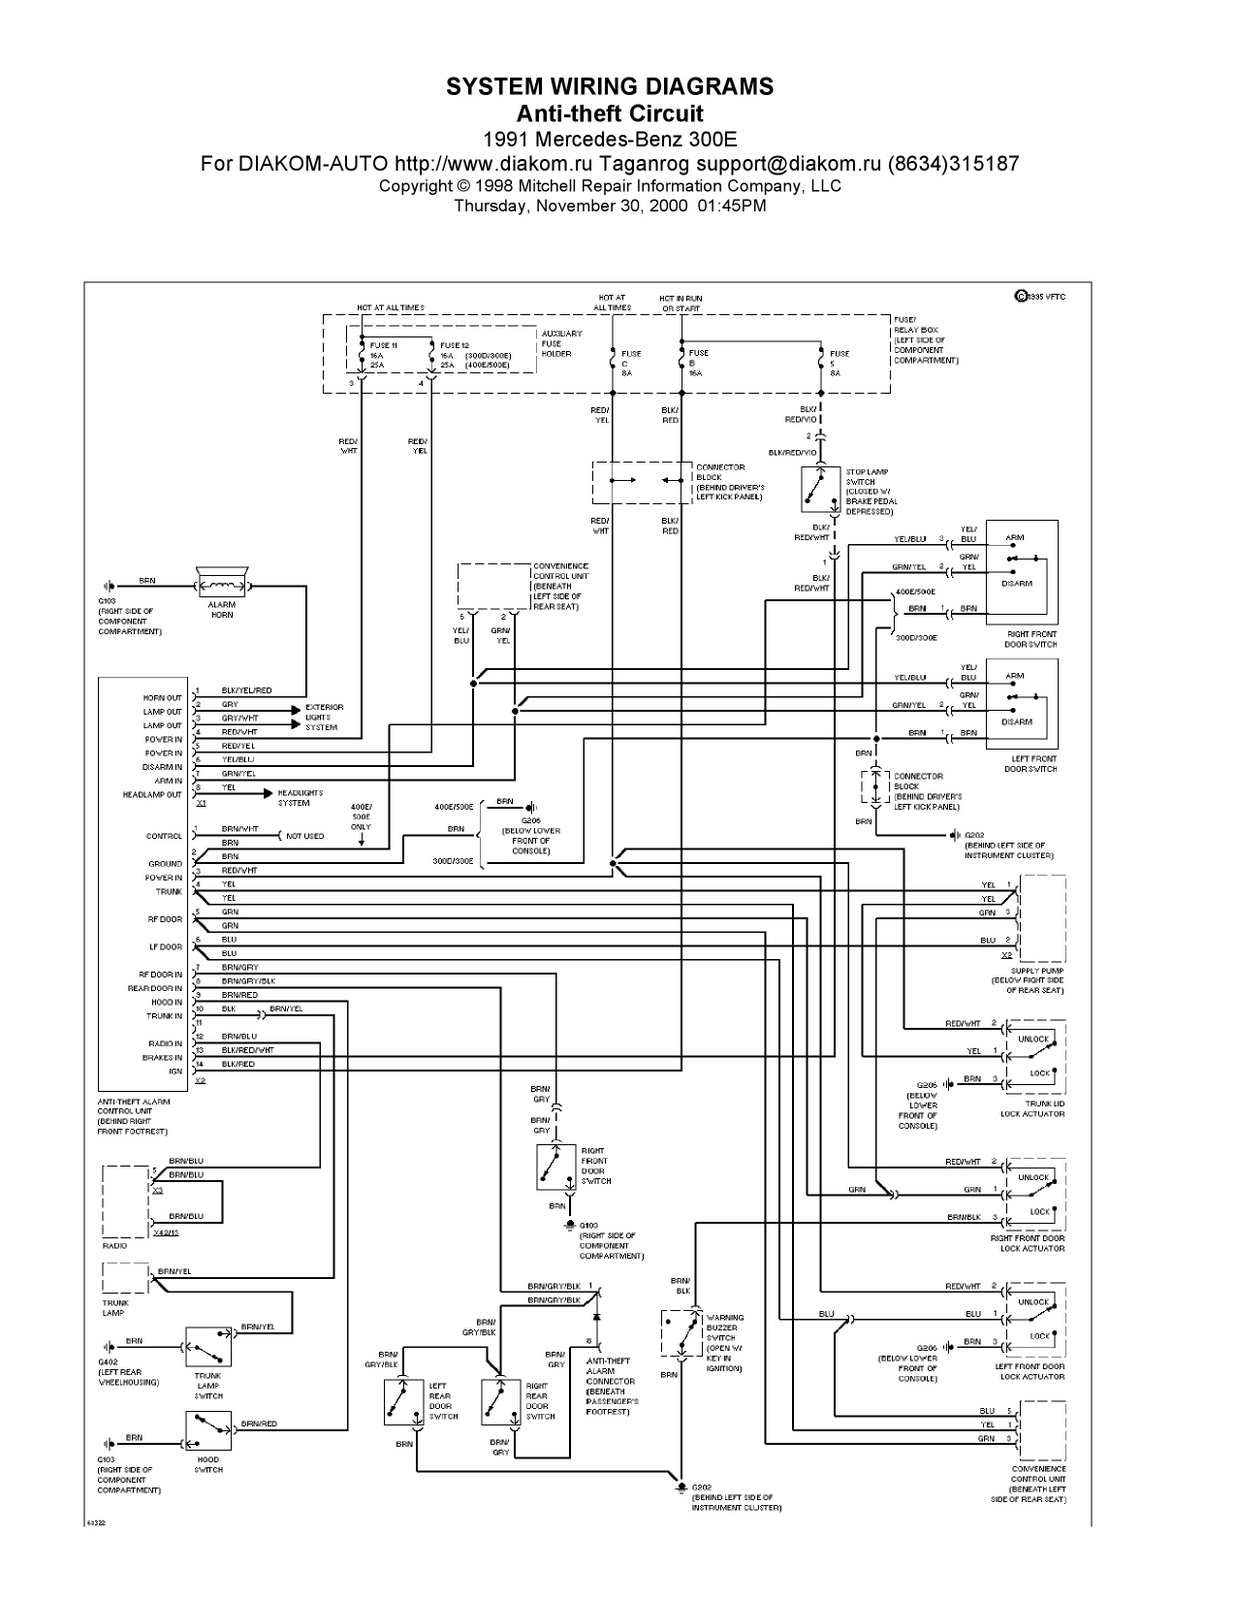 mercedes benz atego wiring diagram wiring diagram blog mercedes atego abs wiring diagram wiring diagram expert [ 1236 x 1600 Pixel ]